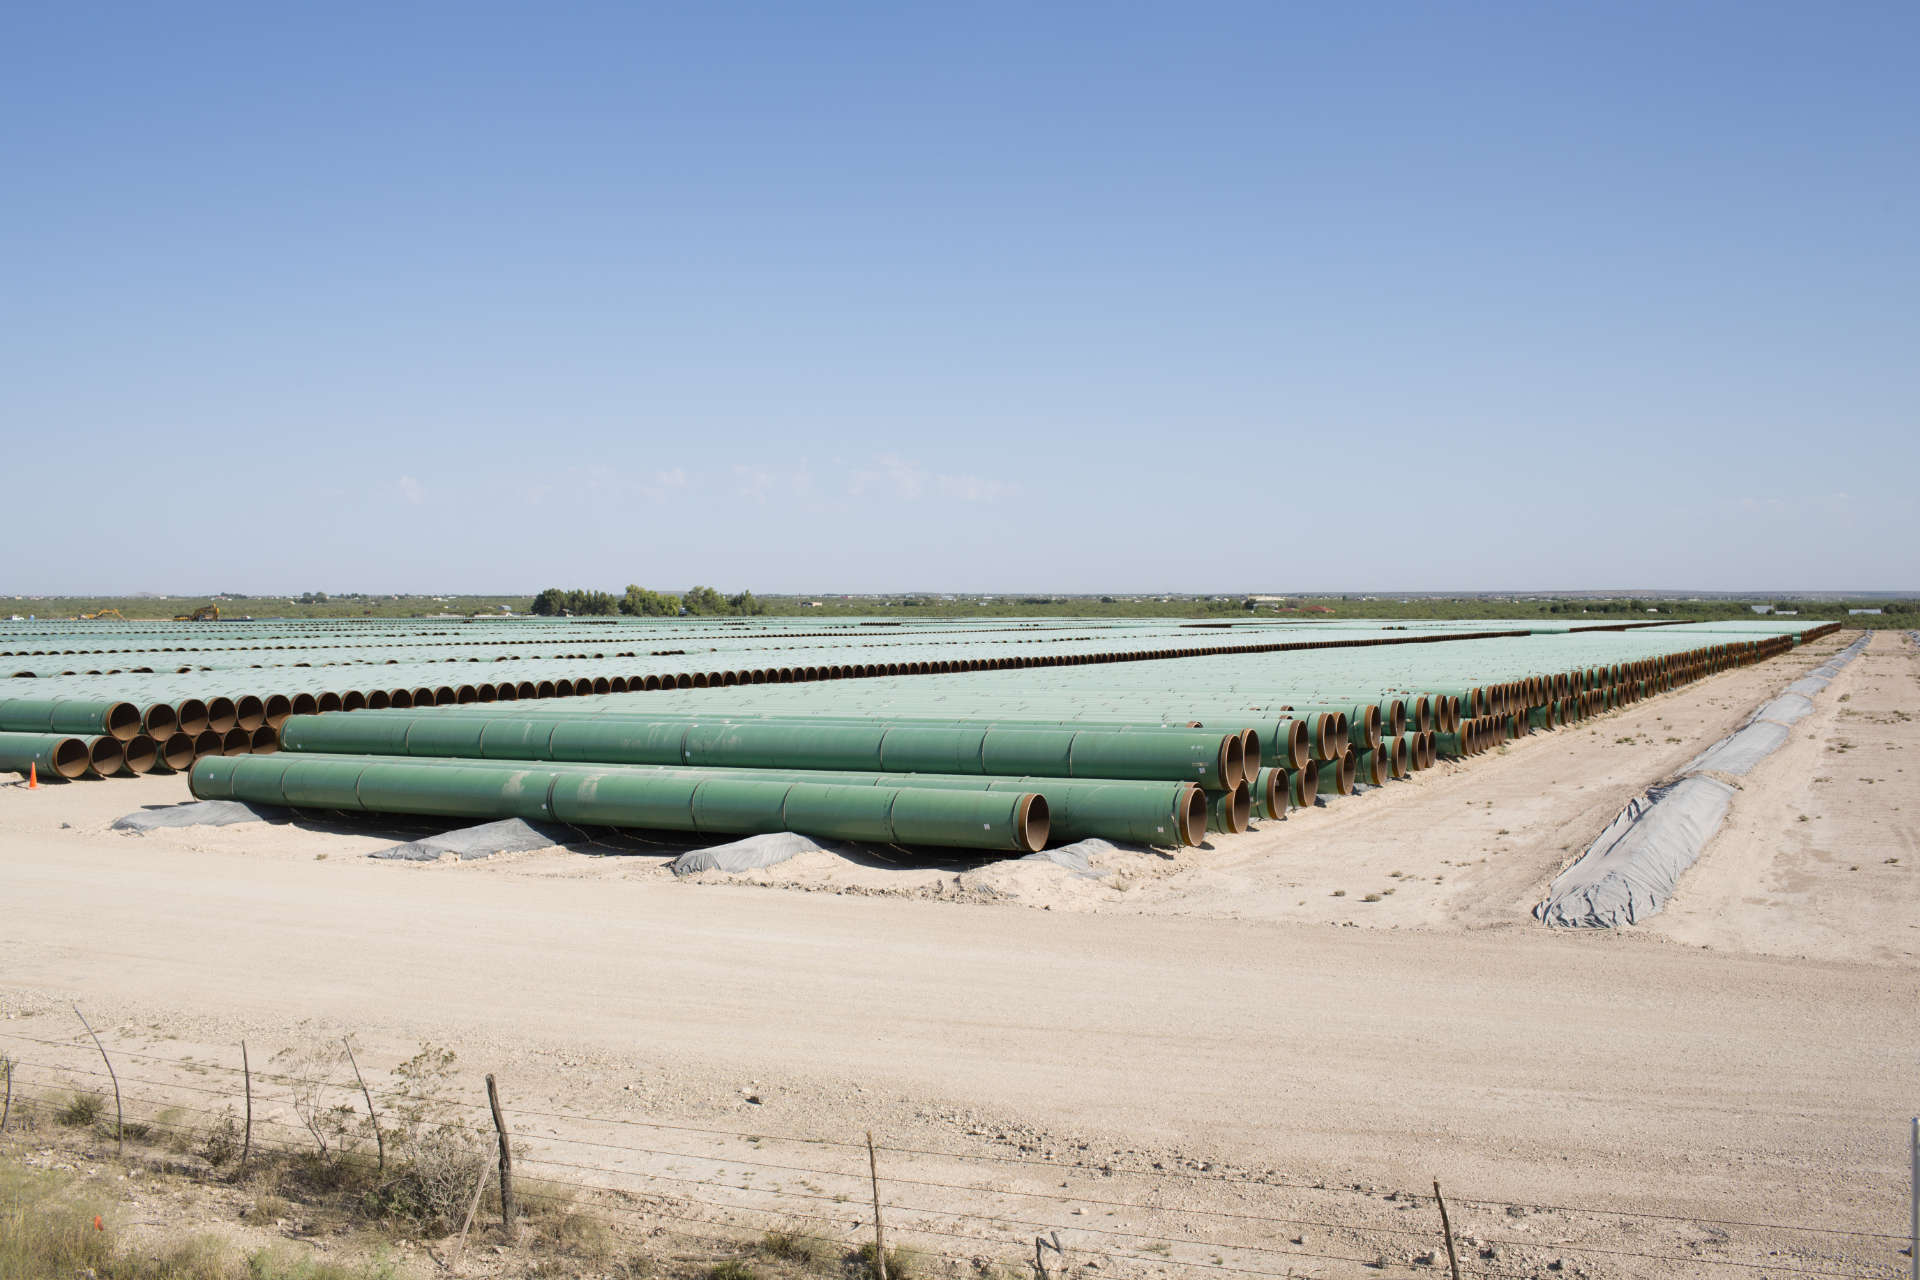 Sections of pipe for the proposed 143-mile Trans-Pecos Pipeline are stacked near Fort Stockton, Texas.